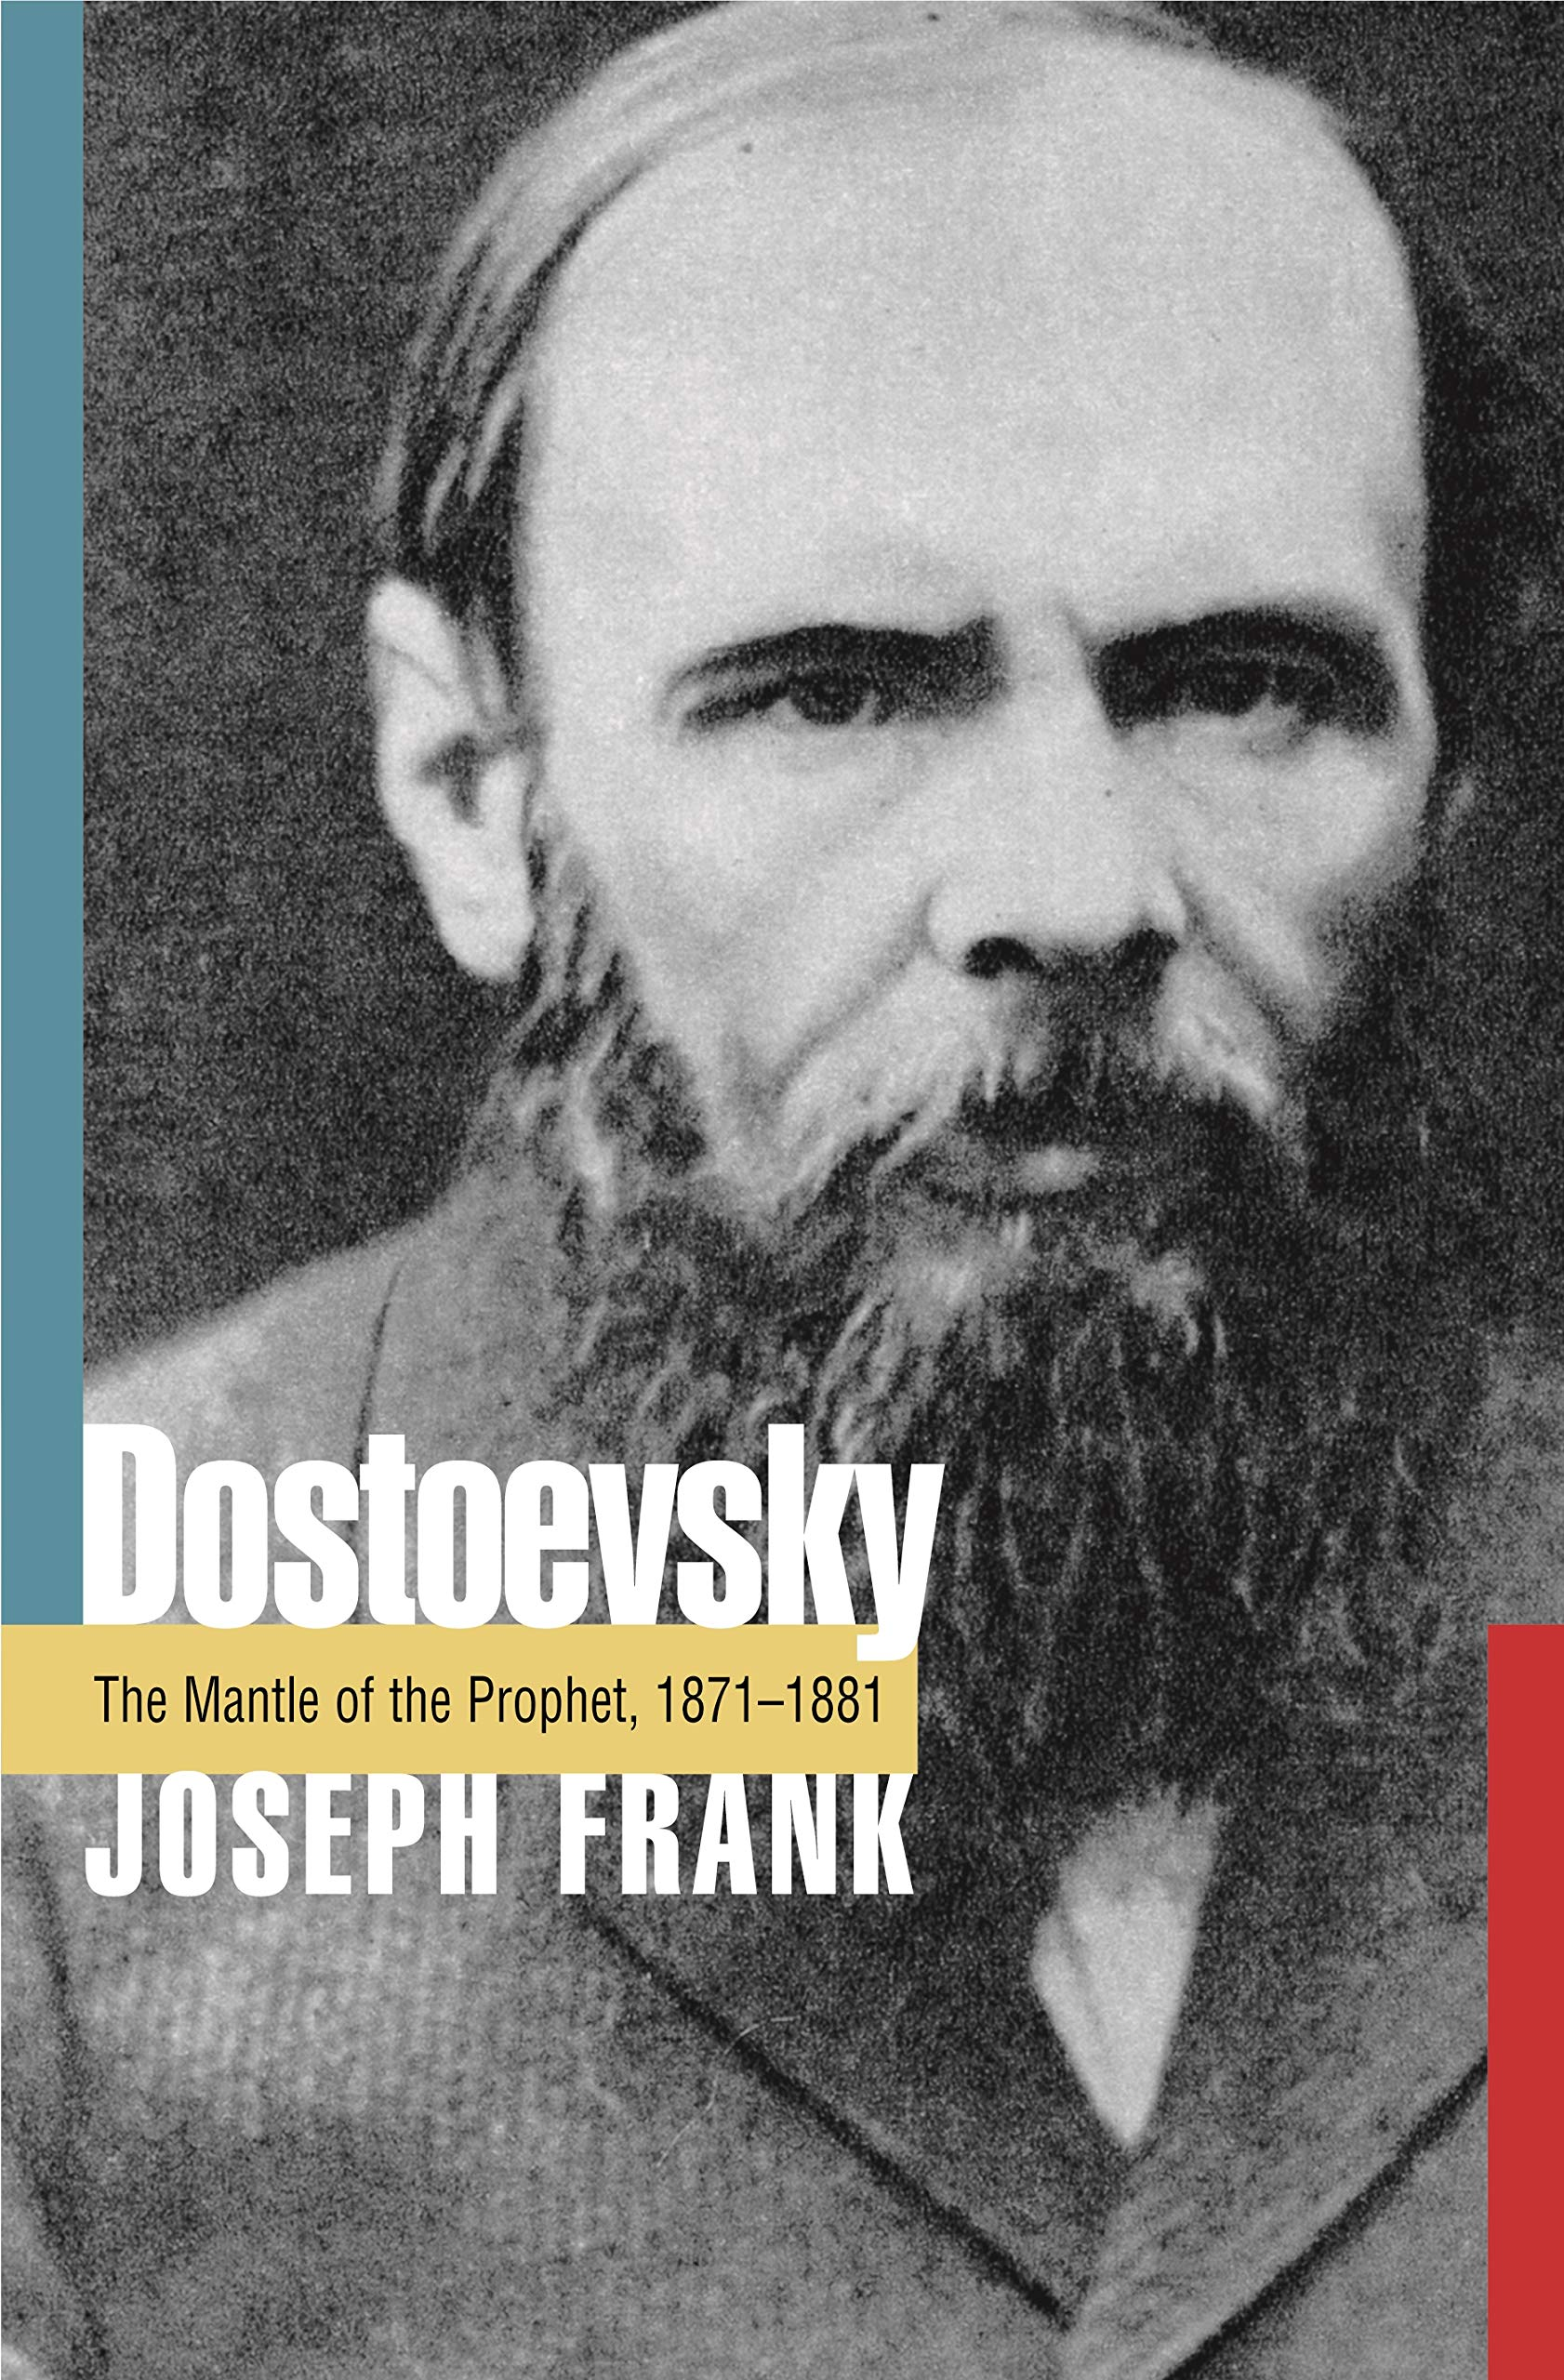 Dostoevsky: The Mantle of the Prophet 1871-1881